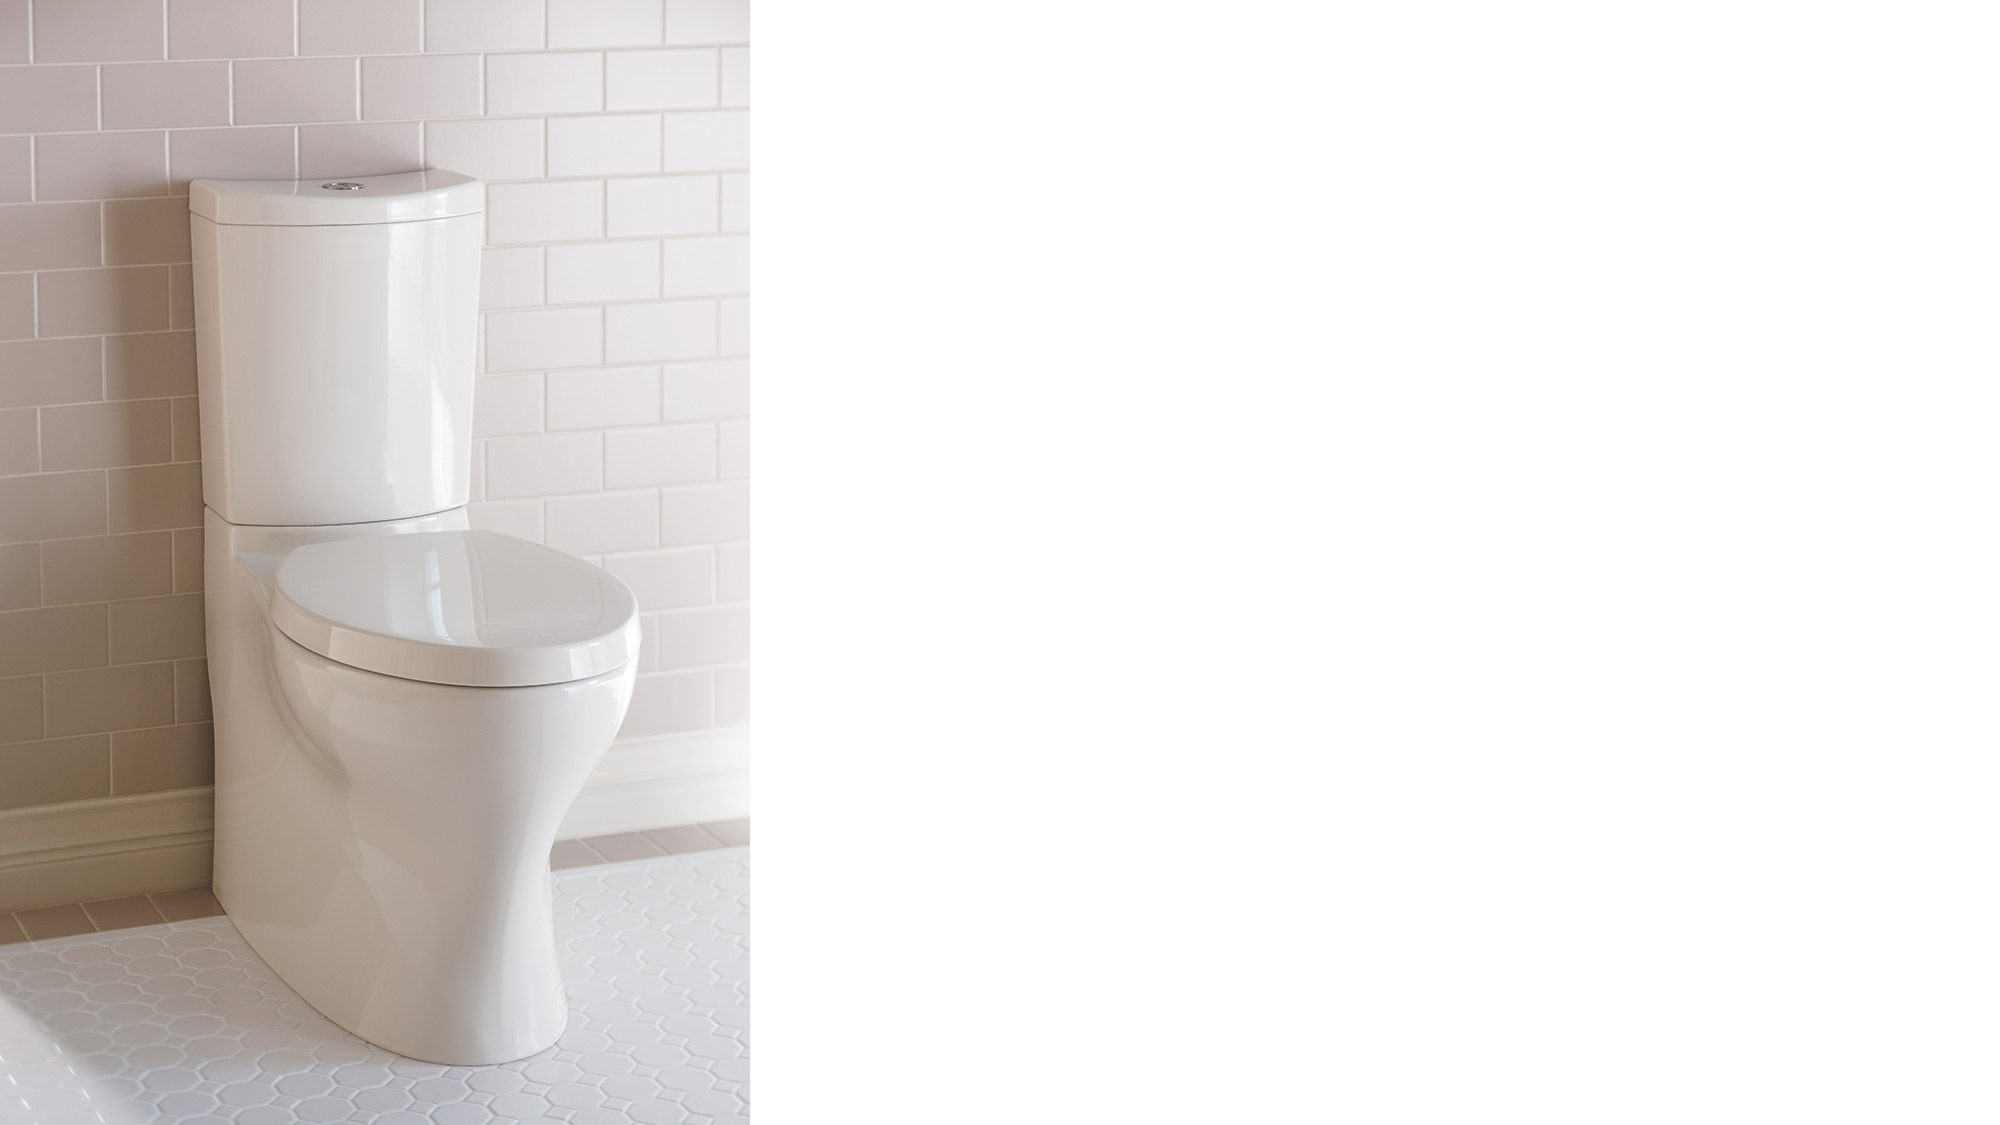 Persuade Curv Comfort Height low-flow toilet